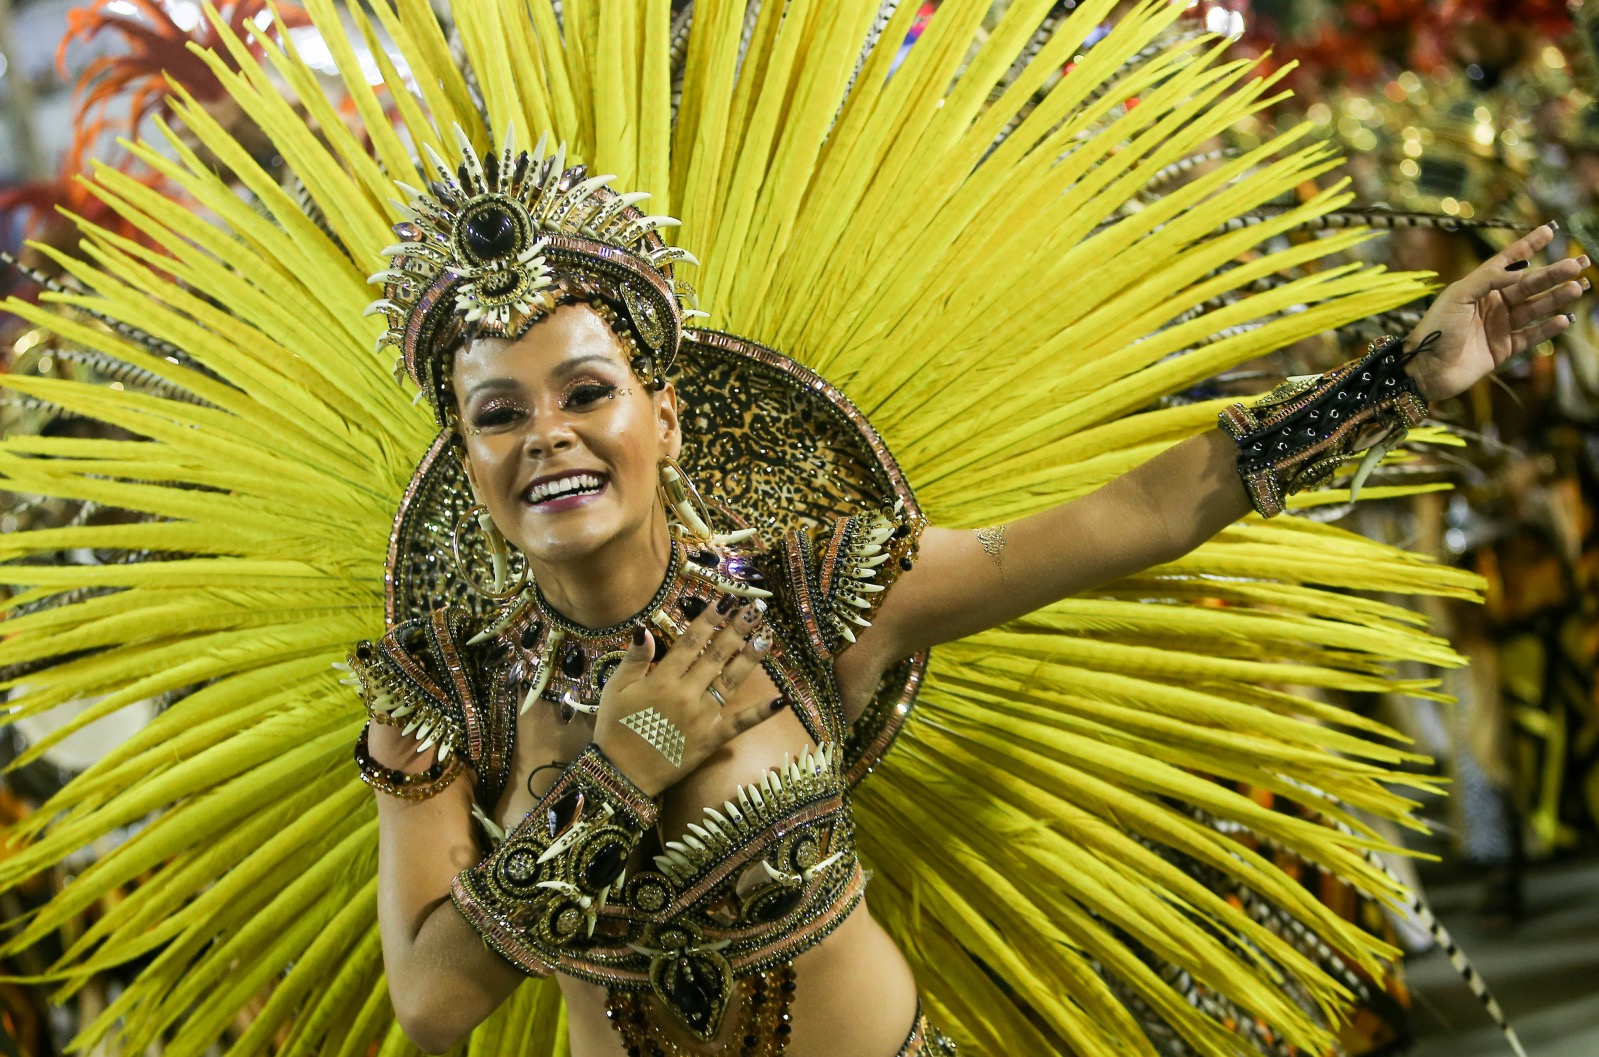 1000+ images about Carnivals on Pinterest | Rio carnival